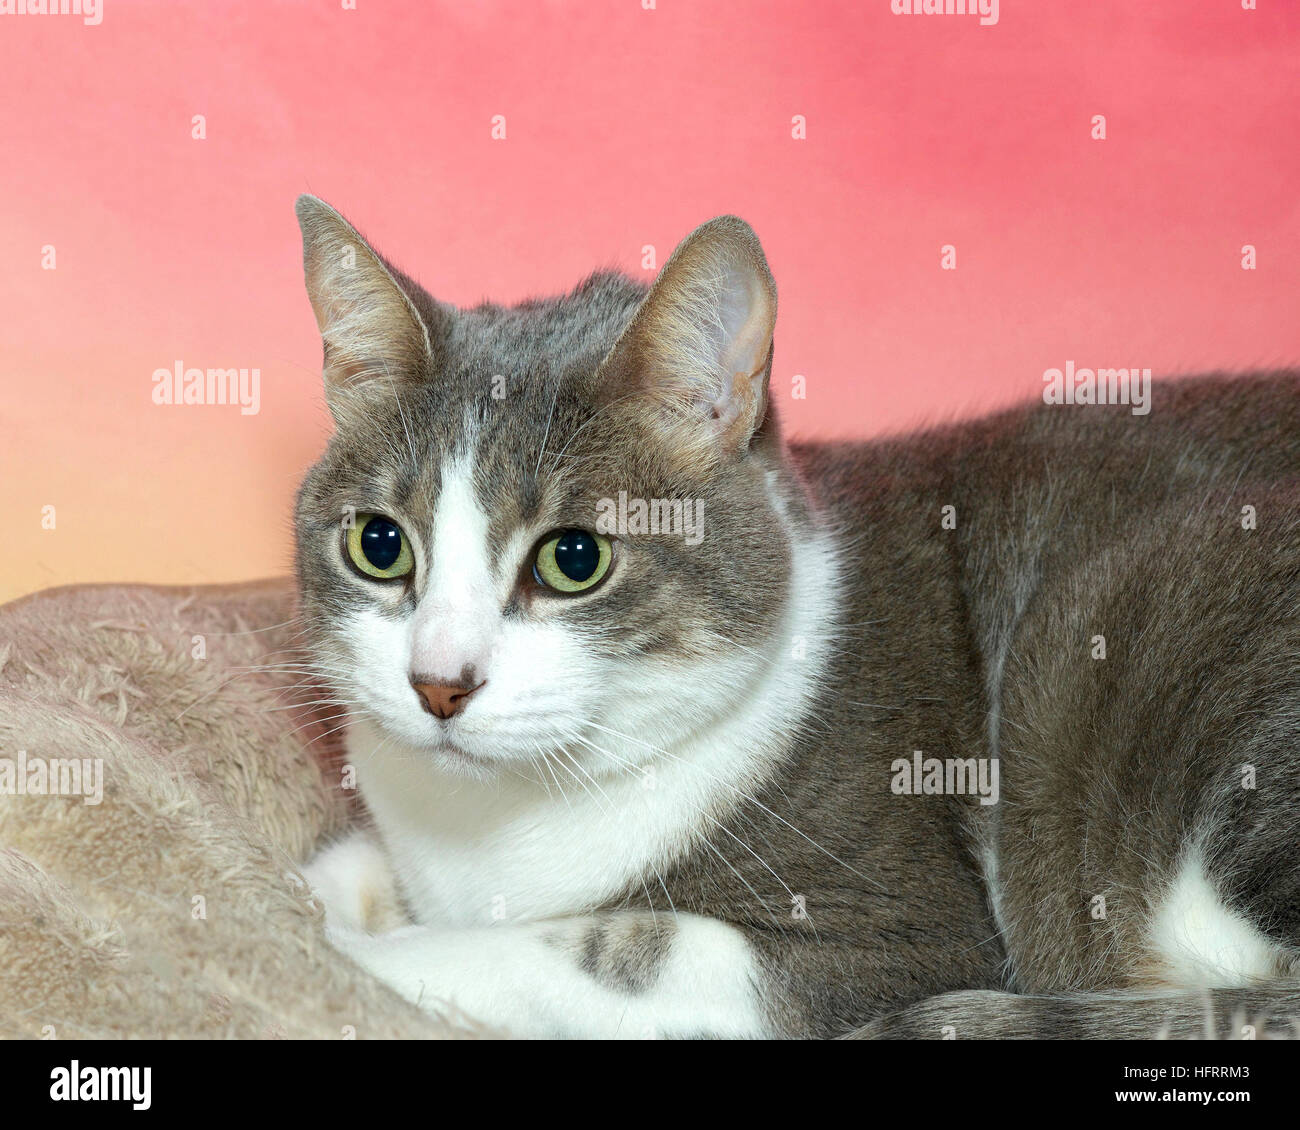 gray and white tabby laying on tan blanket with textured pink and